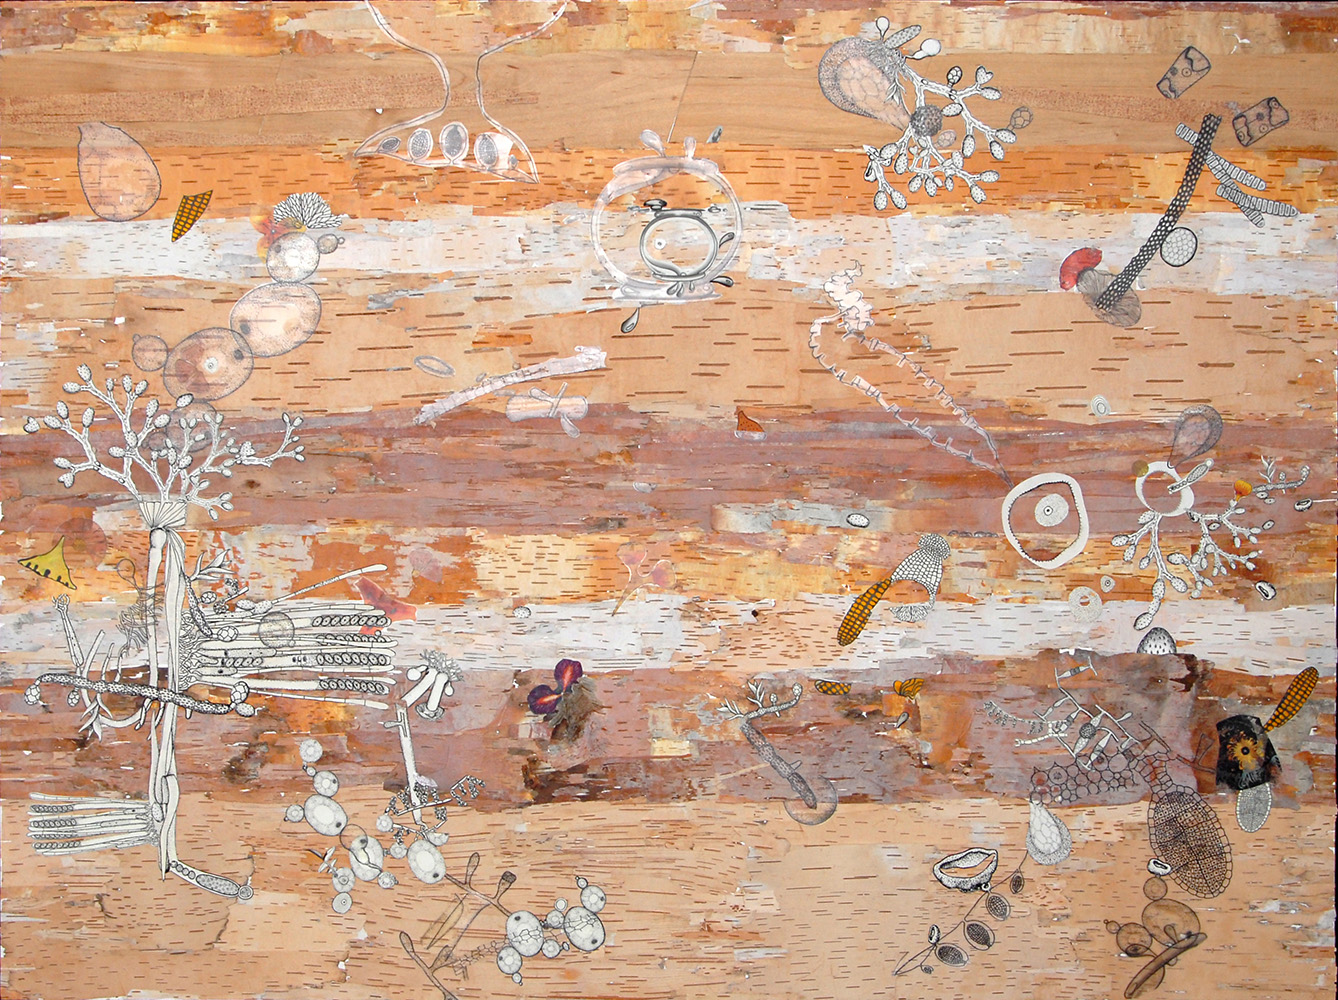 betula , 2011 Birch bark from the Adirondacks, archival inkjet prints, ink, gouache, acrylic, pencil, 40 x 60 inches